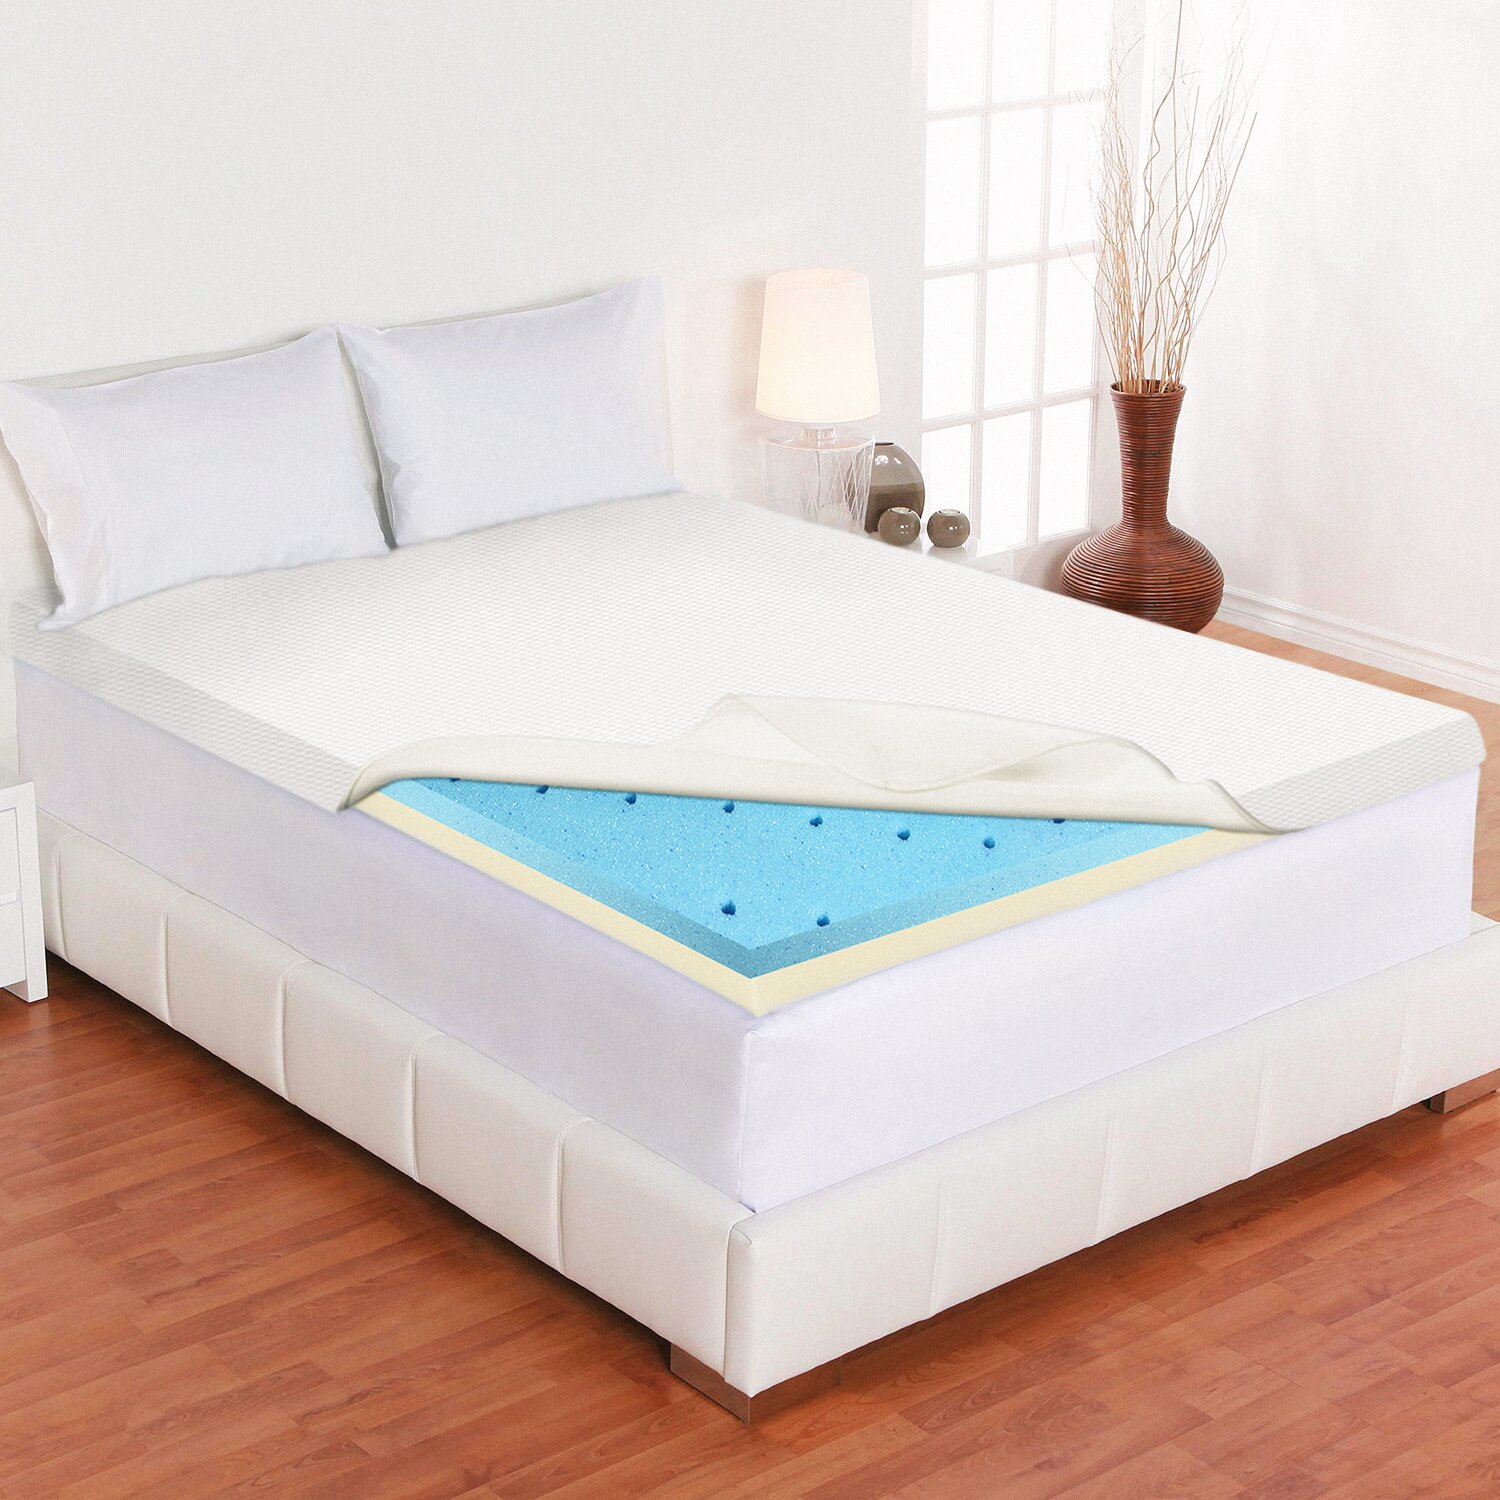 Spinal Solution Gel Infused High Density Foam Mattress Topper With Removable Cover Wayfair